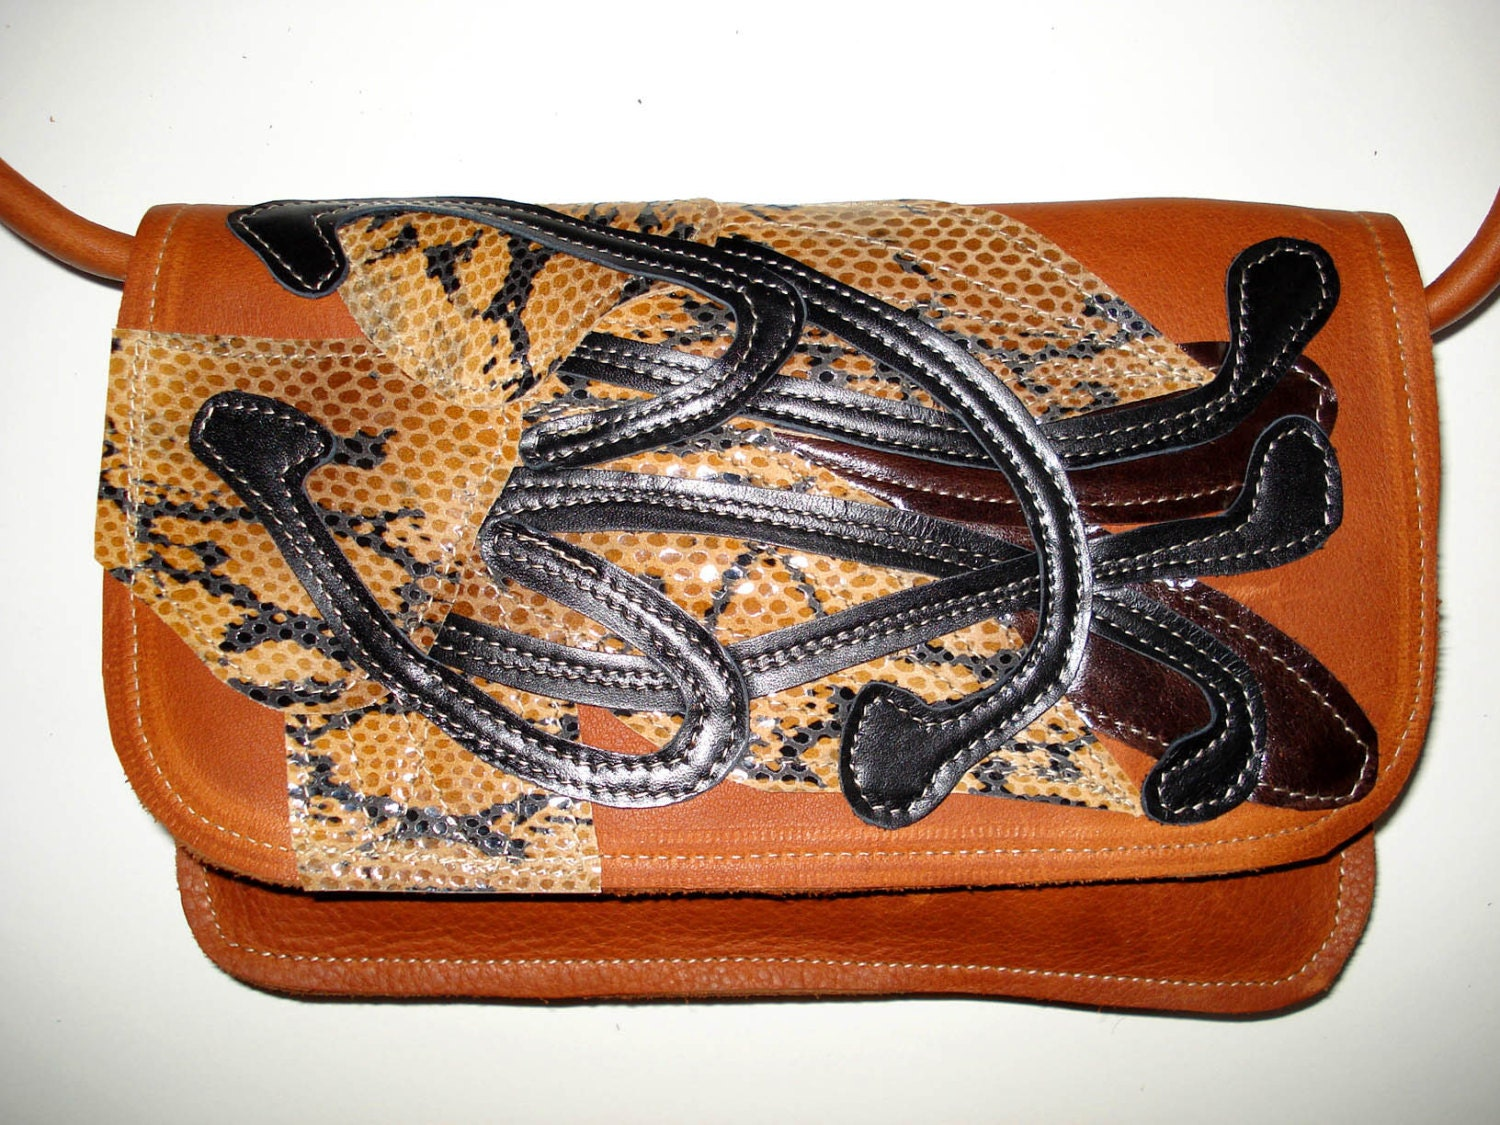 Shoulder strap Clutch bag in Tan leather with snake skin applique Lily